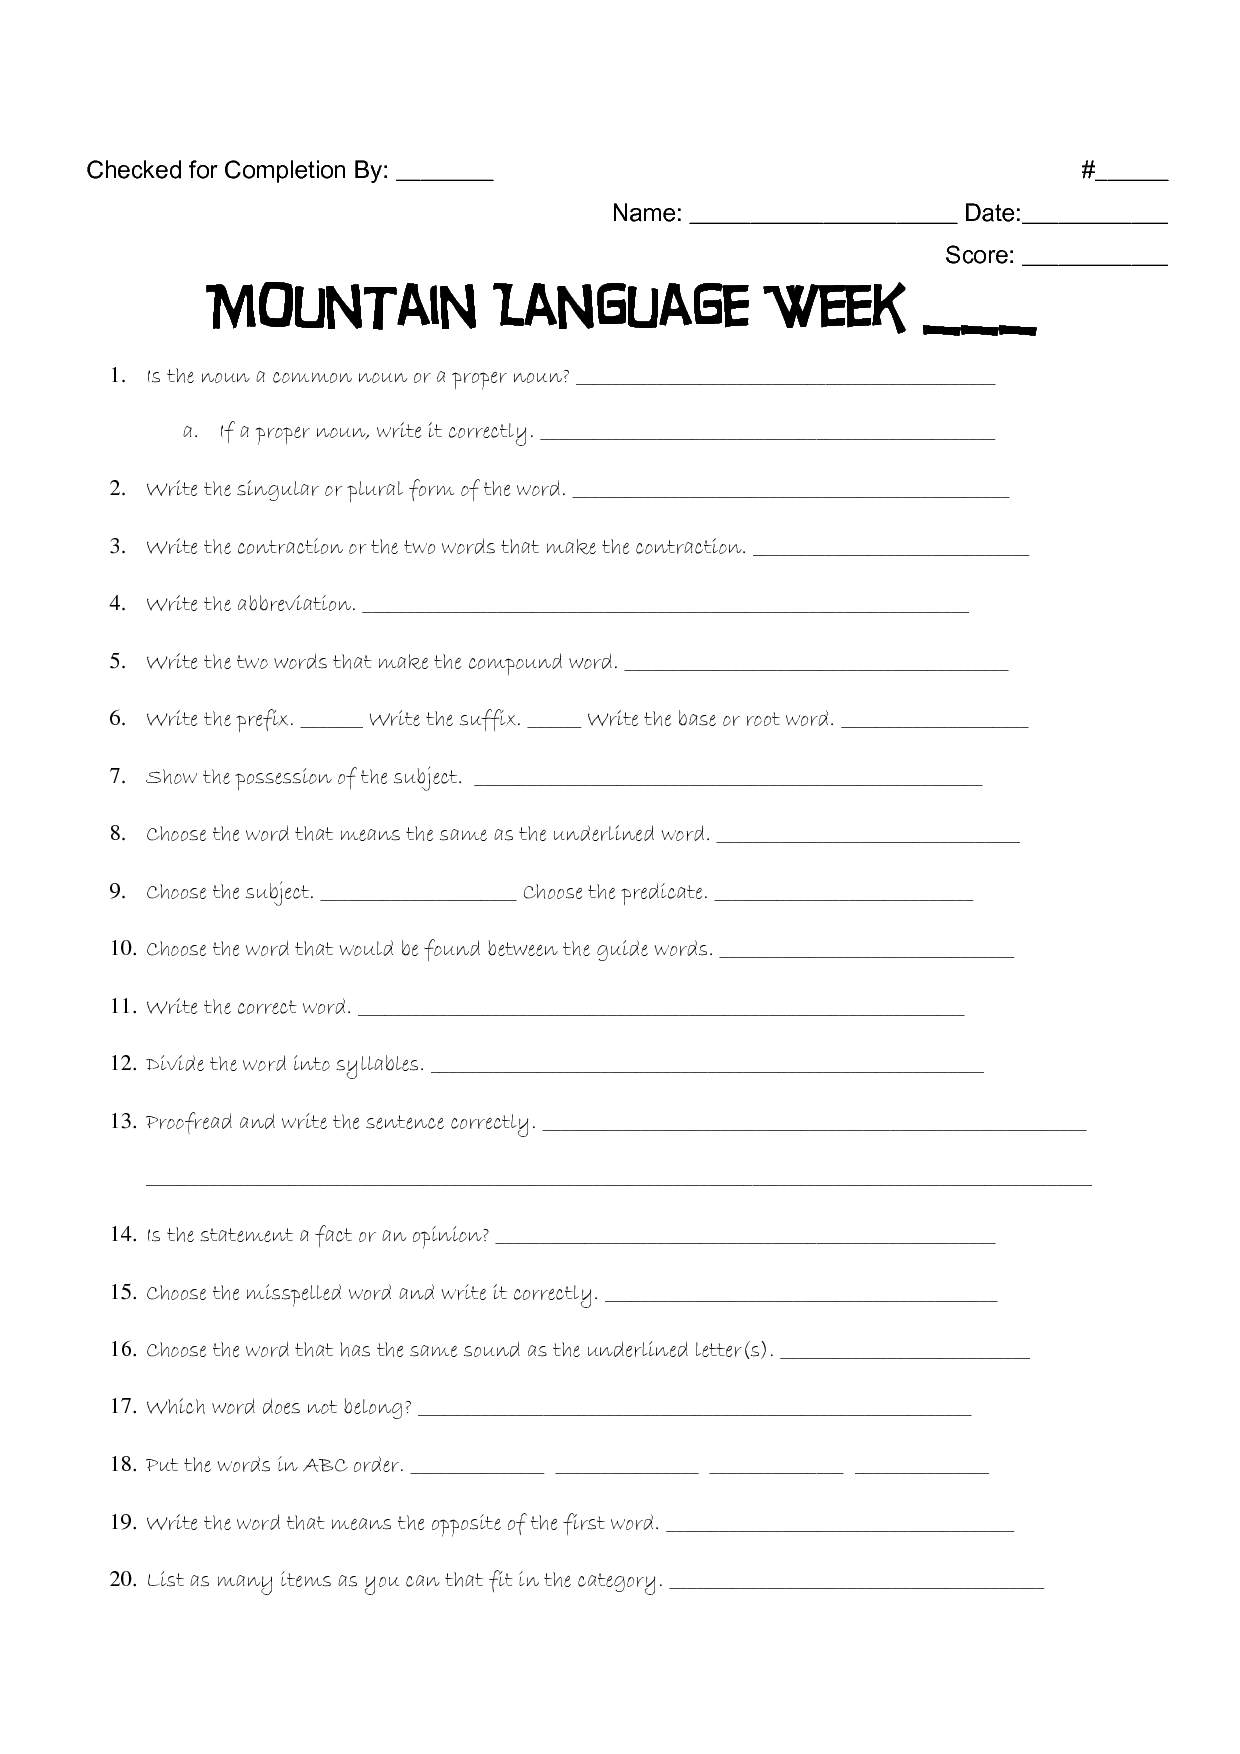 16 Best Images Of 5th Grade Mountain Language Worksheet